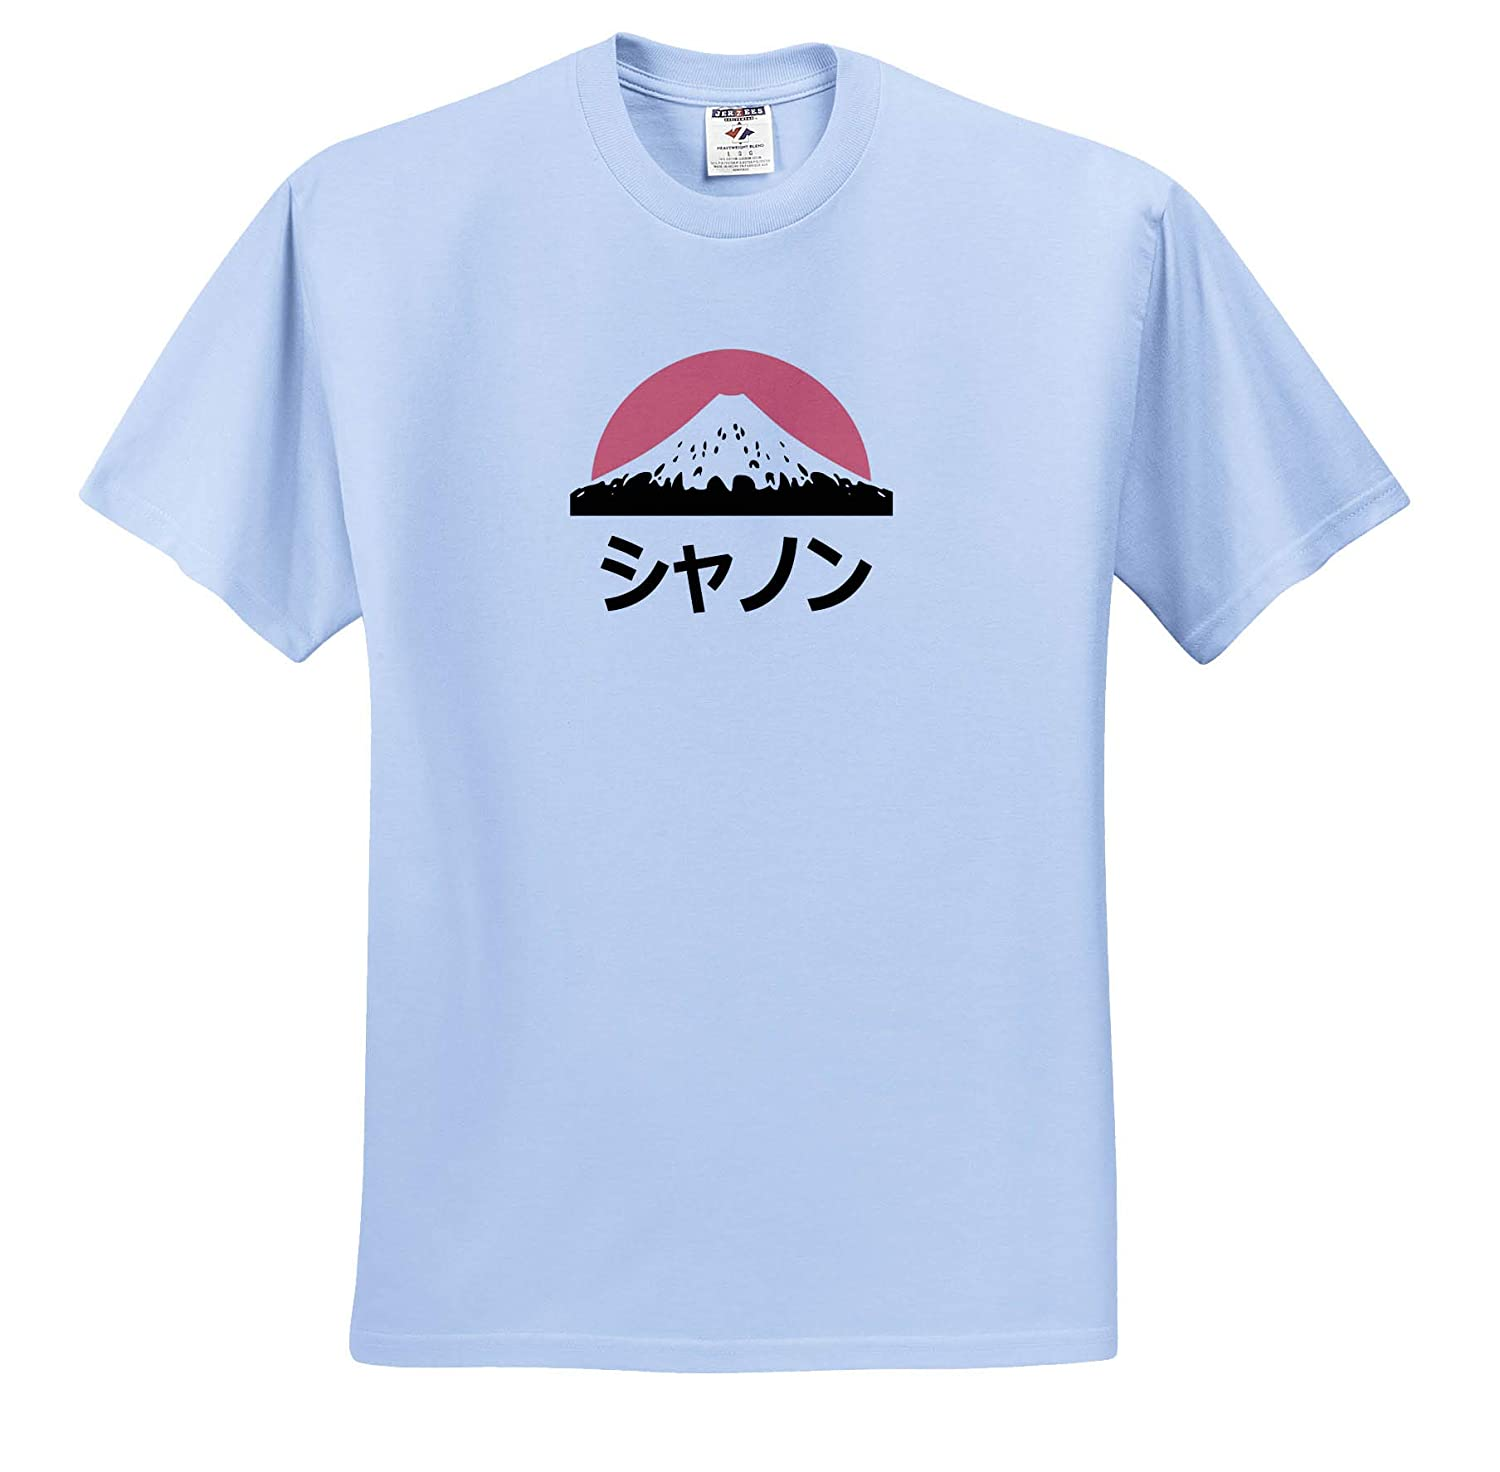 Name in Japanese ts/_320623 Shannon in Japanese Writing Adult T-Shirt XL 3dRose InspirationzStore